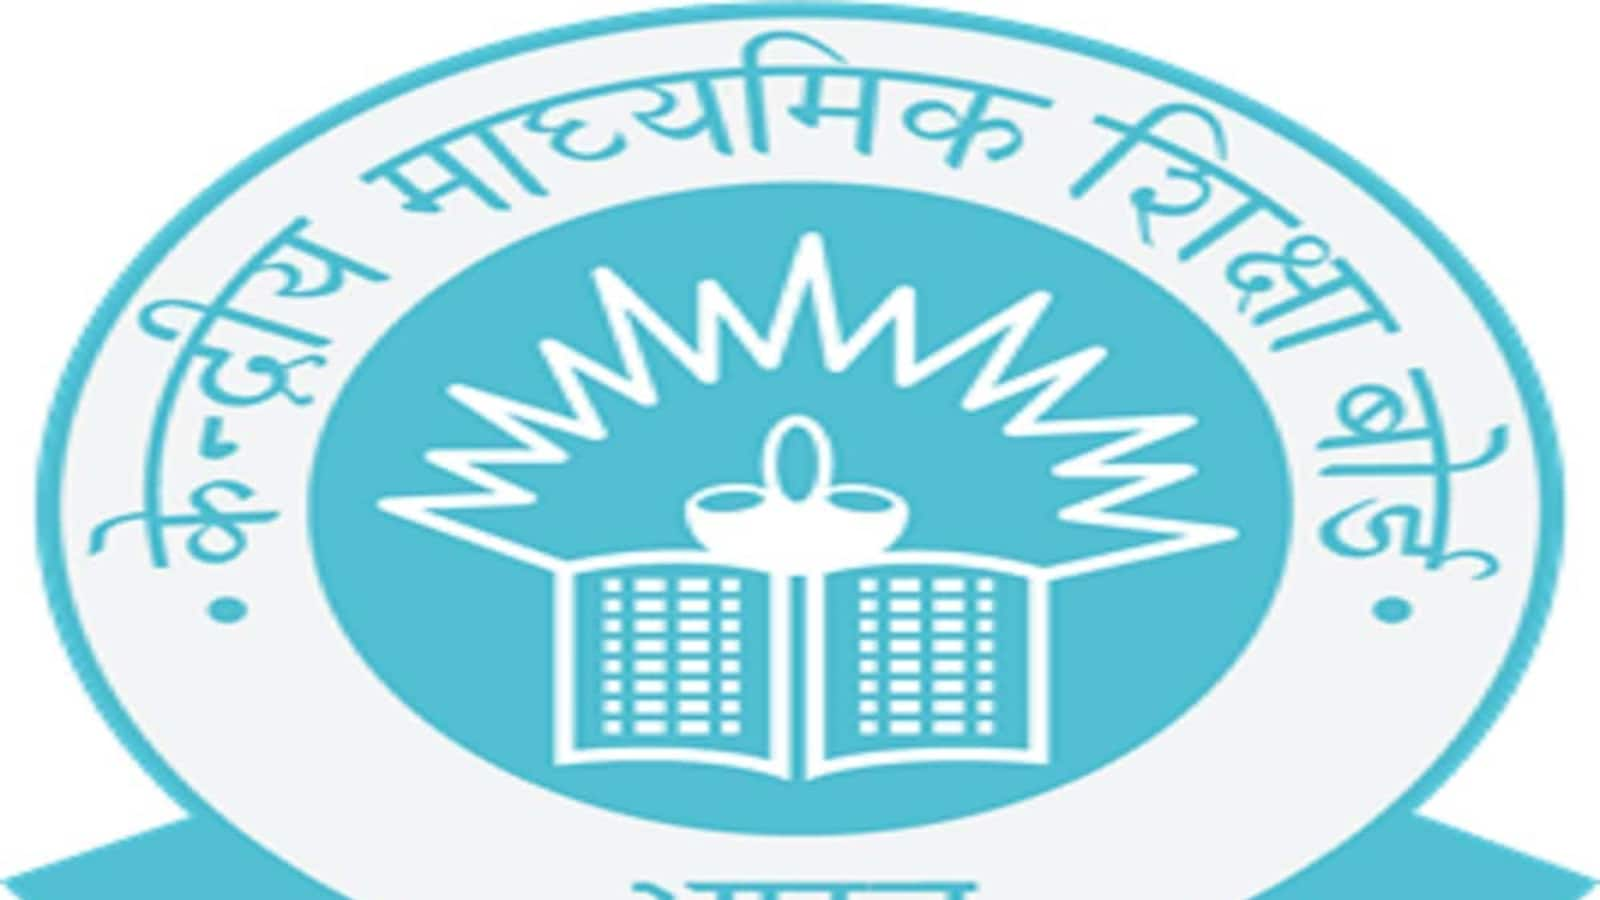 CBSE to train teachers on hybrid learning to manage uncertain situations